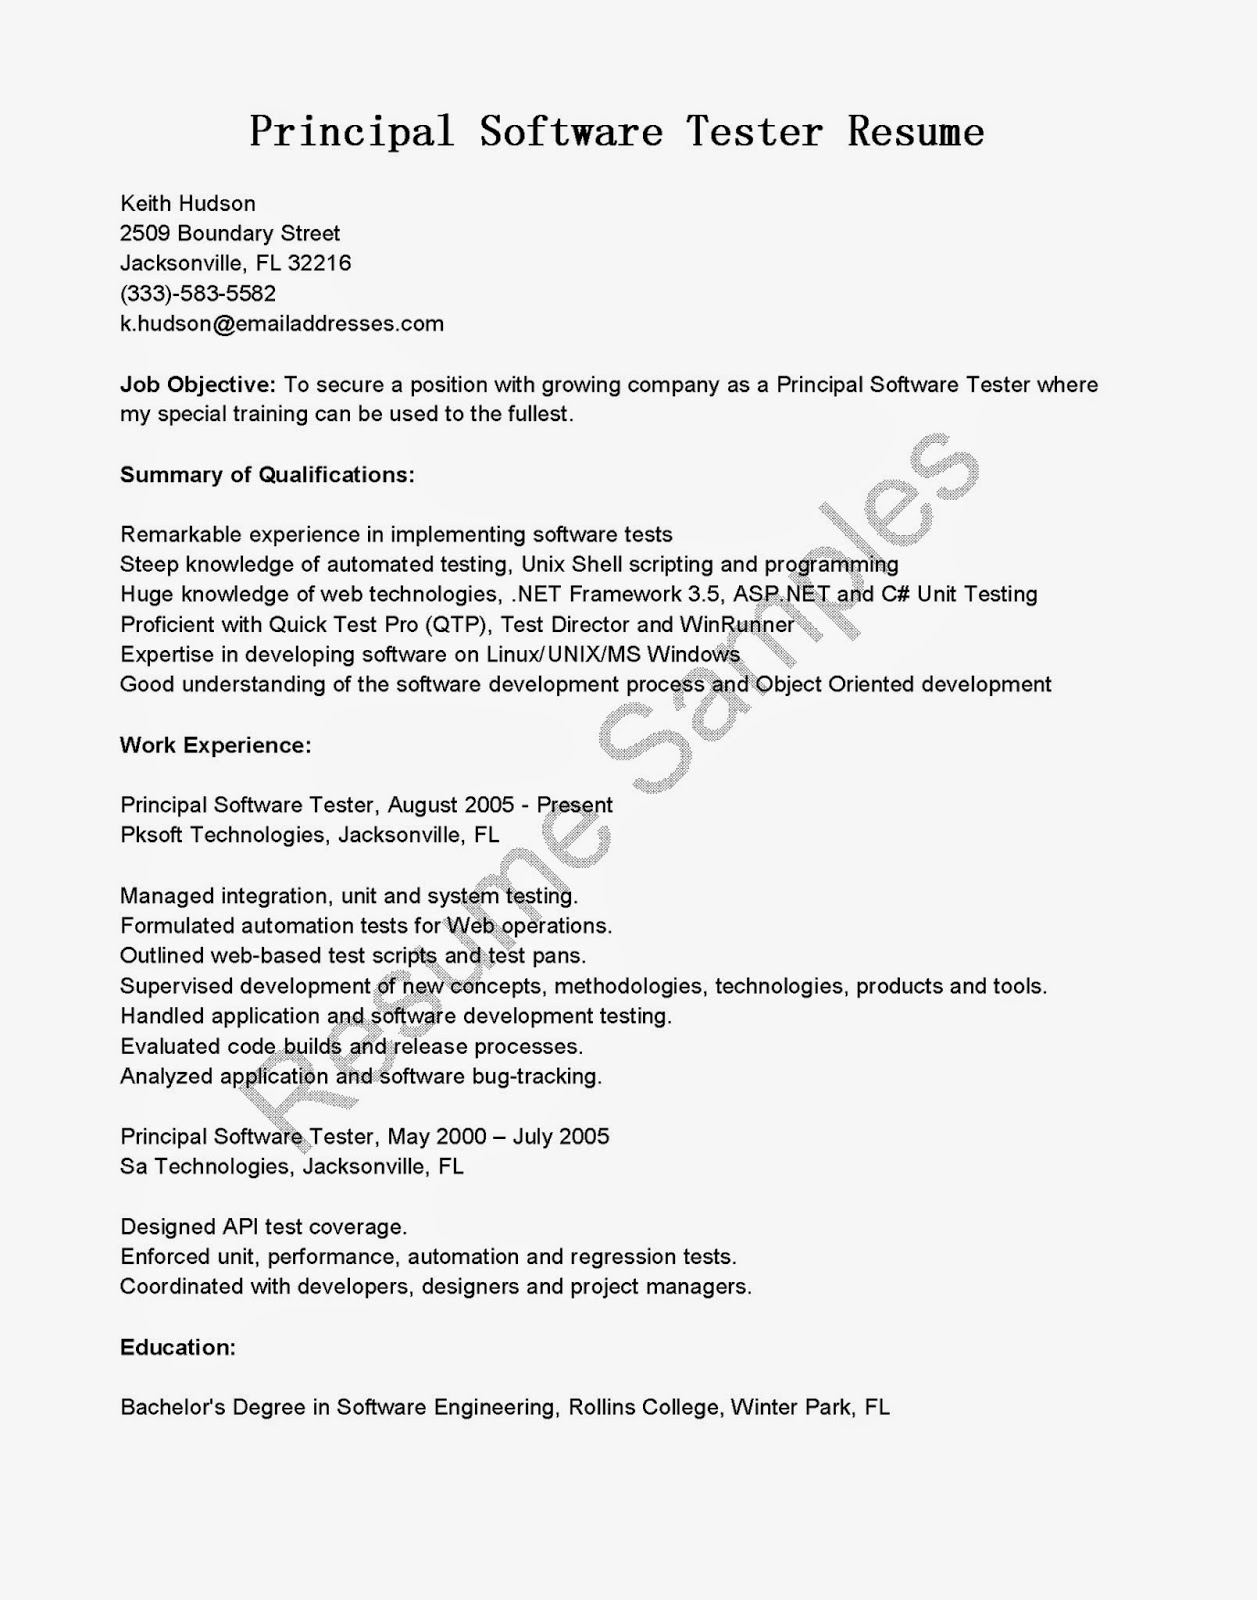 sample resume software engineer years experience resume. Resume Example. Resume CV Cover Letter